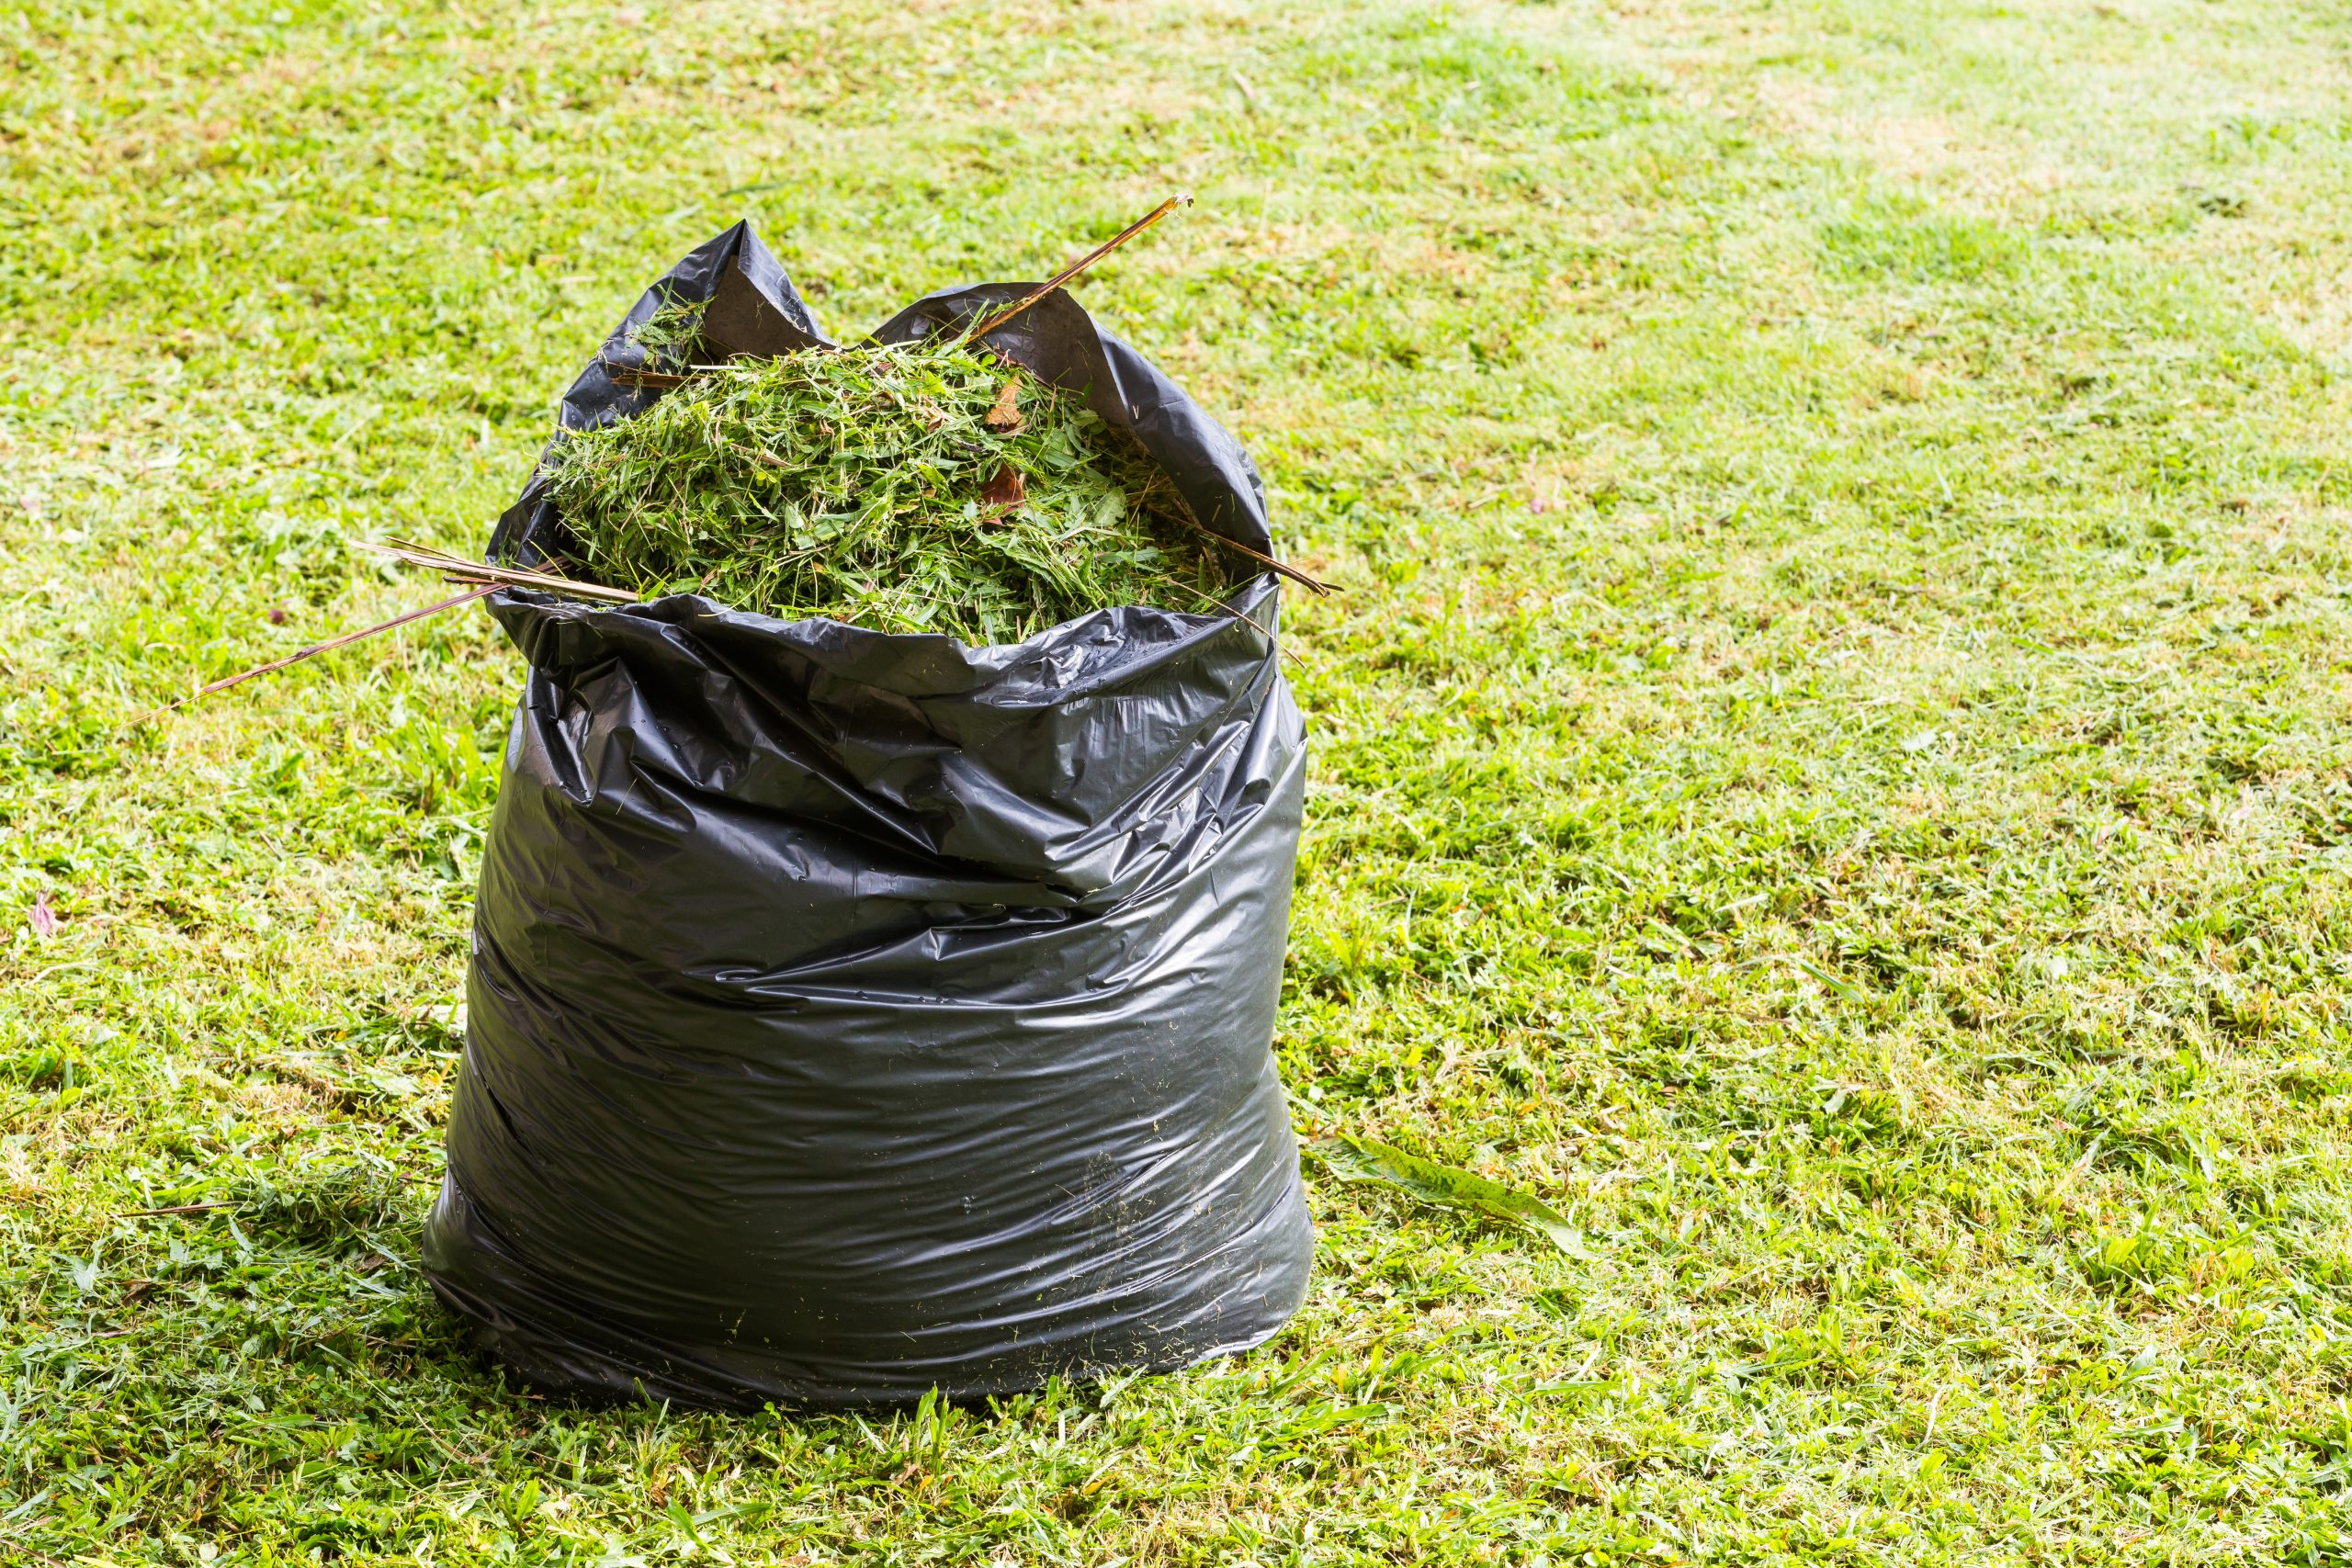 County Board Votes to Ban Plastic Bags for Yard Waste